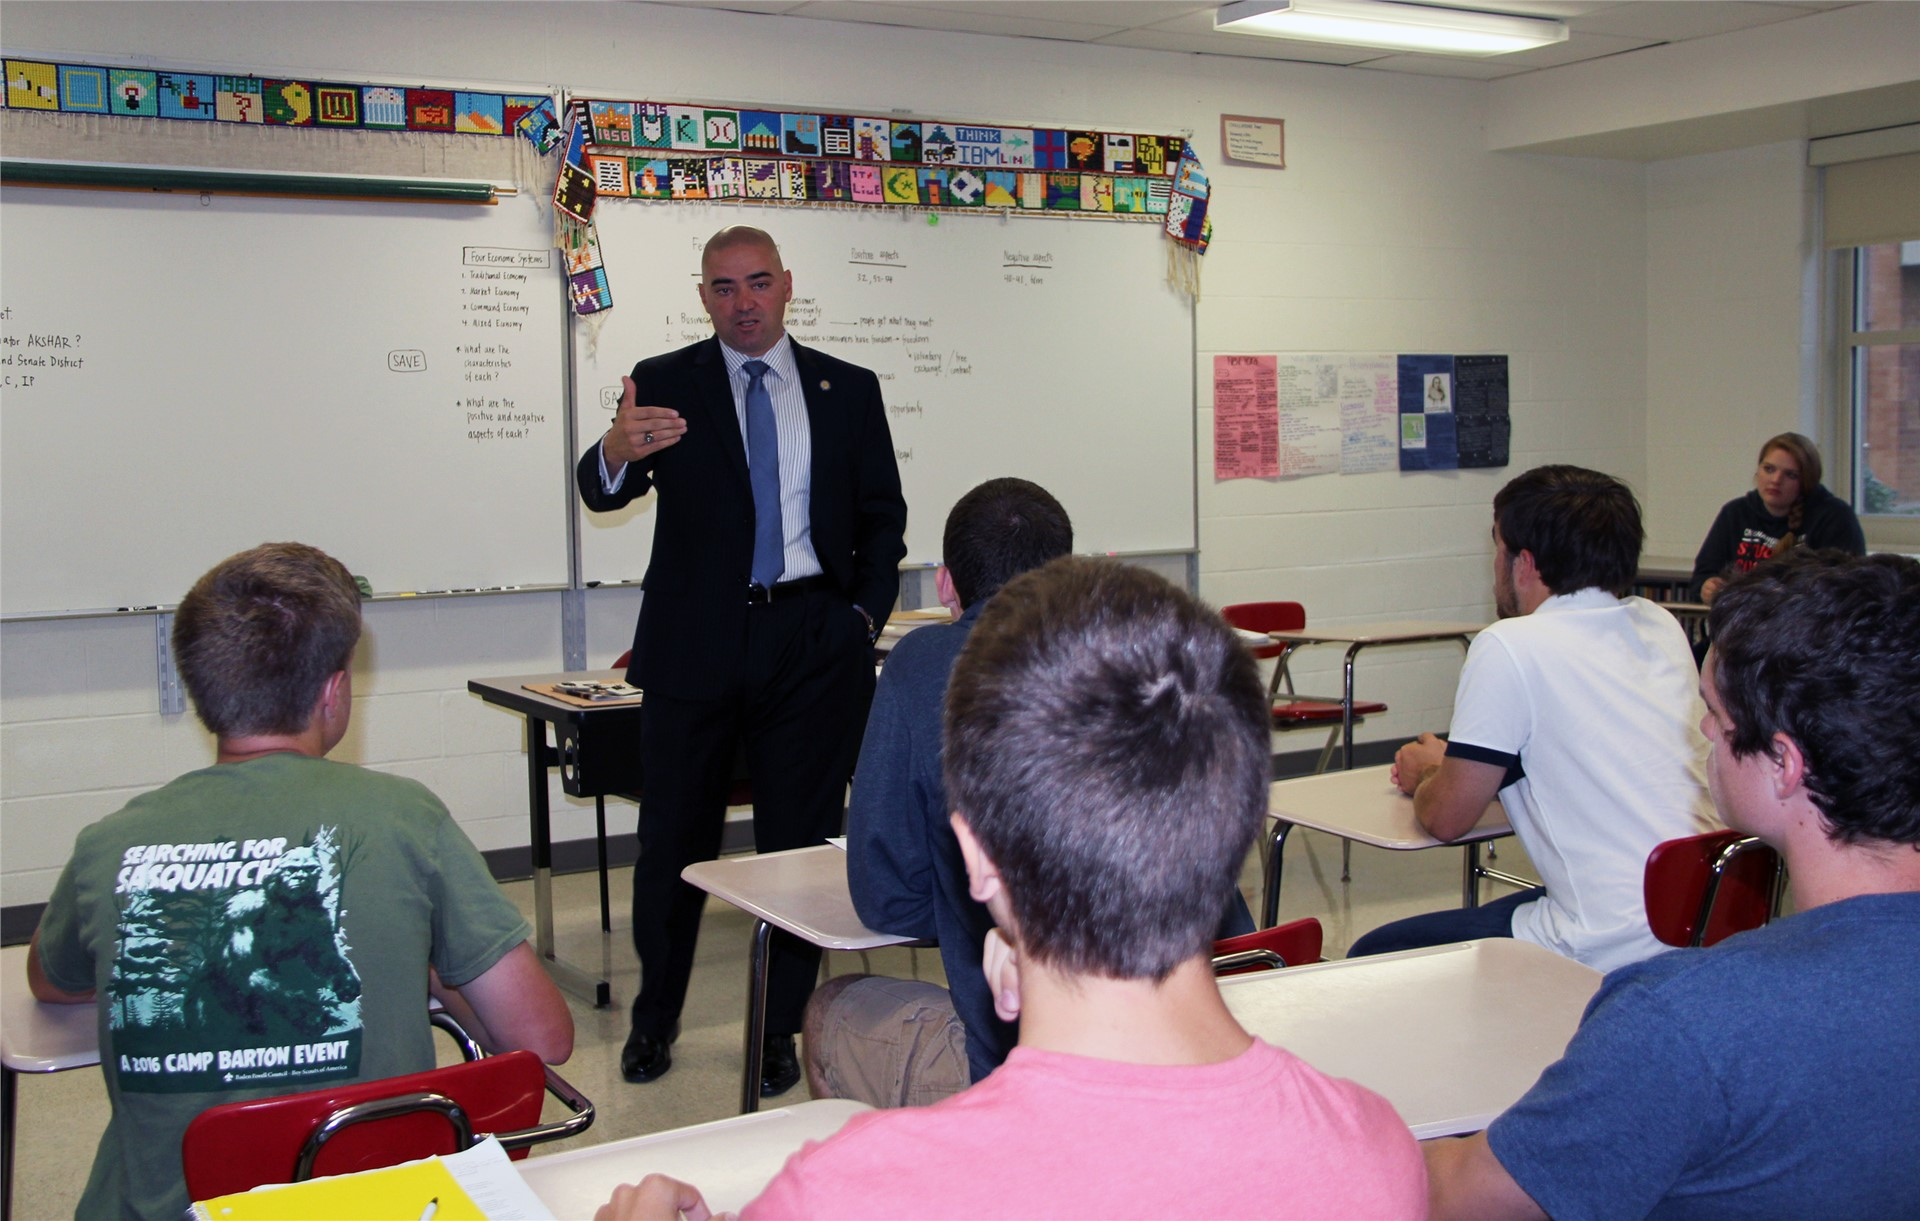 wide shot of senator akshar talking to students in classroom